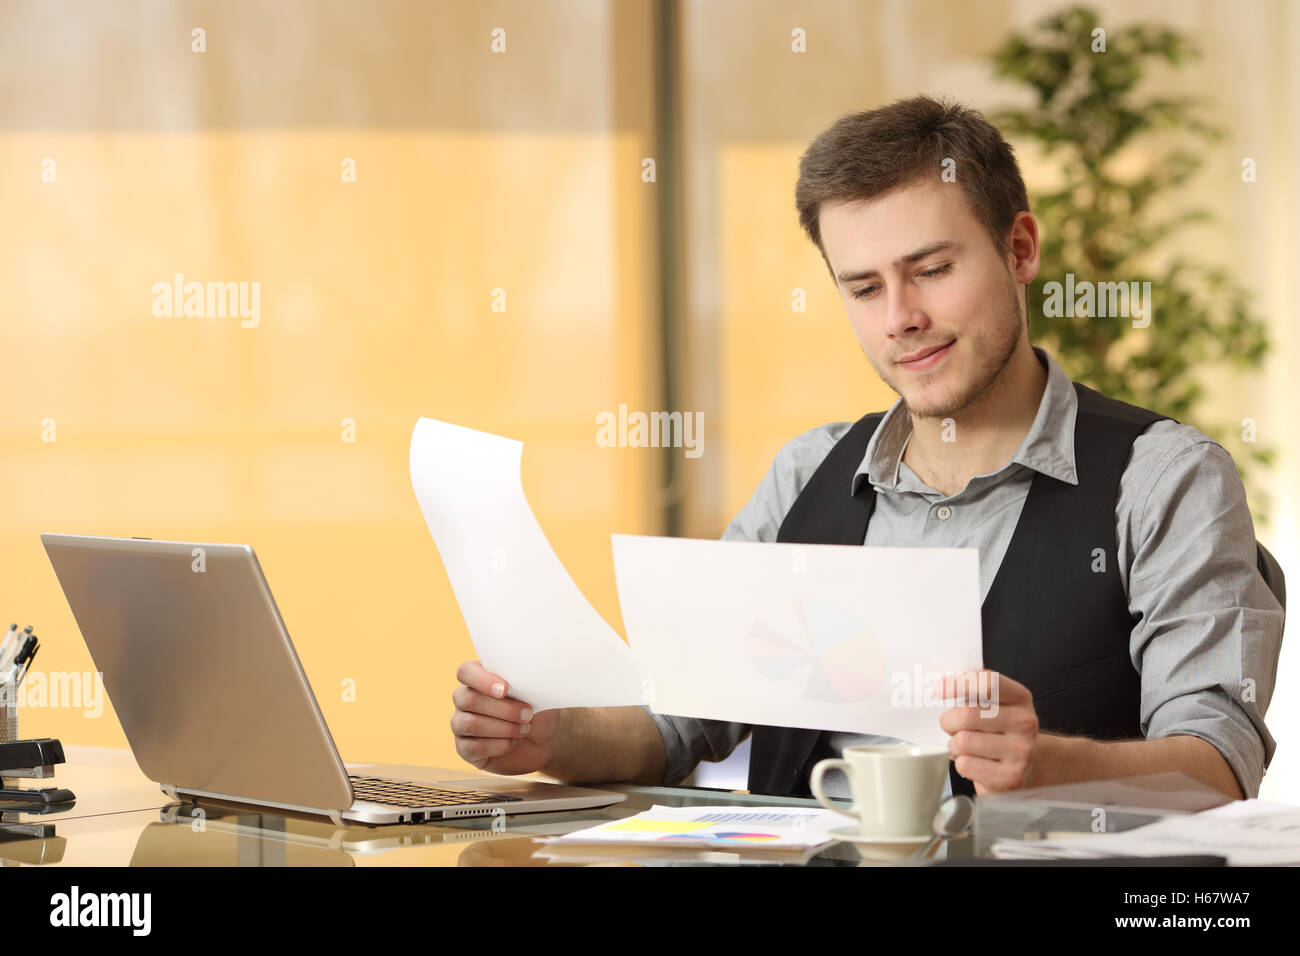 Attentive businessman working comparing paper documents sitting in a desk at office - Stock Image